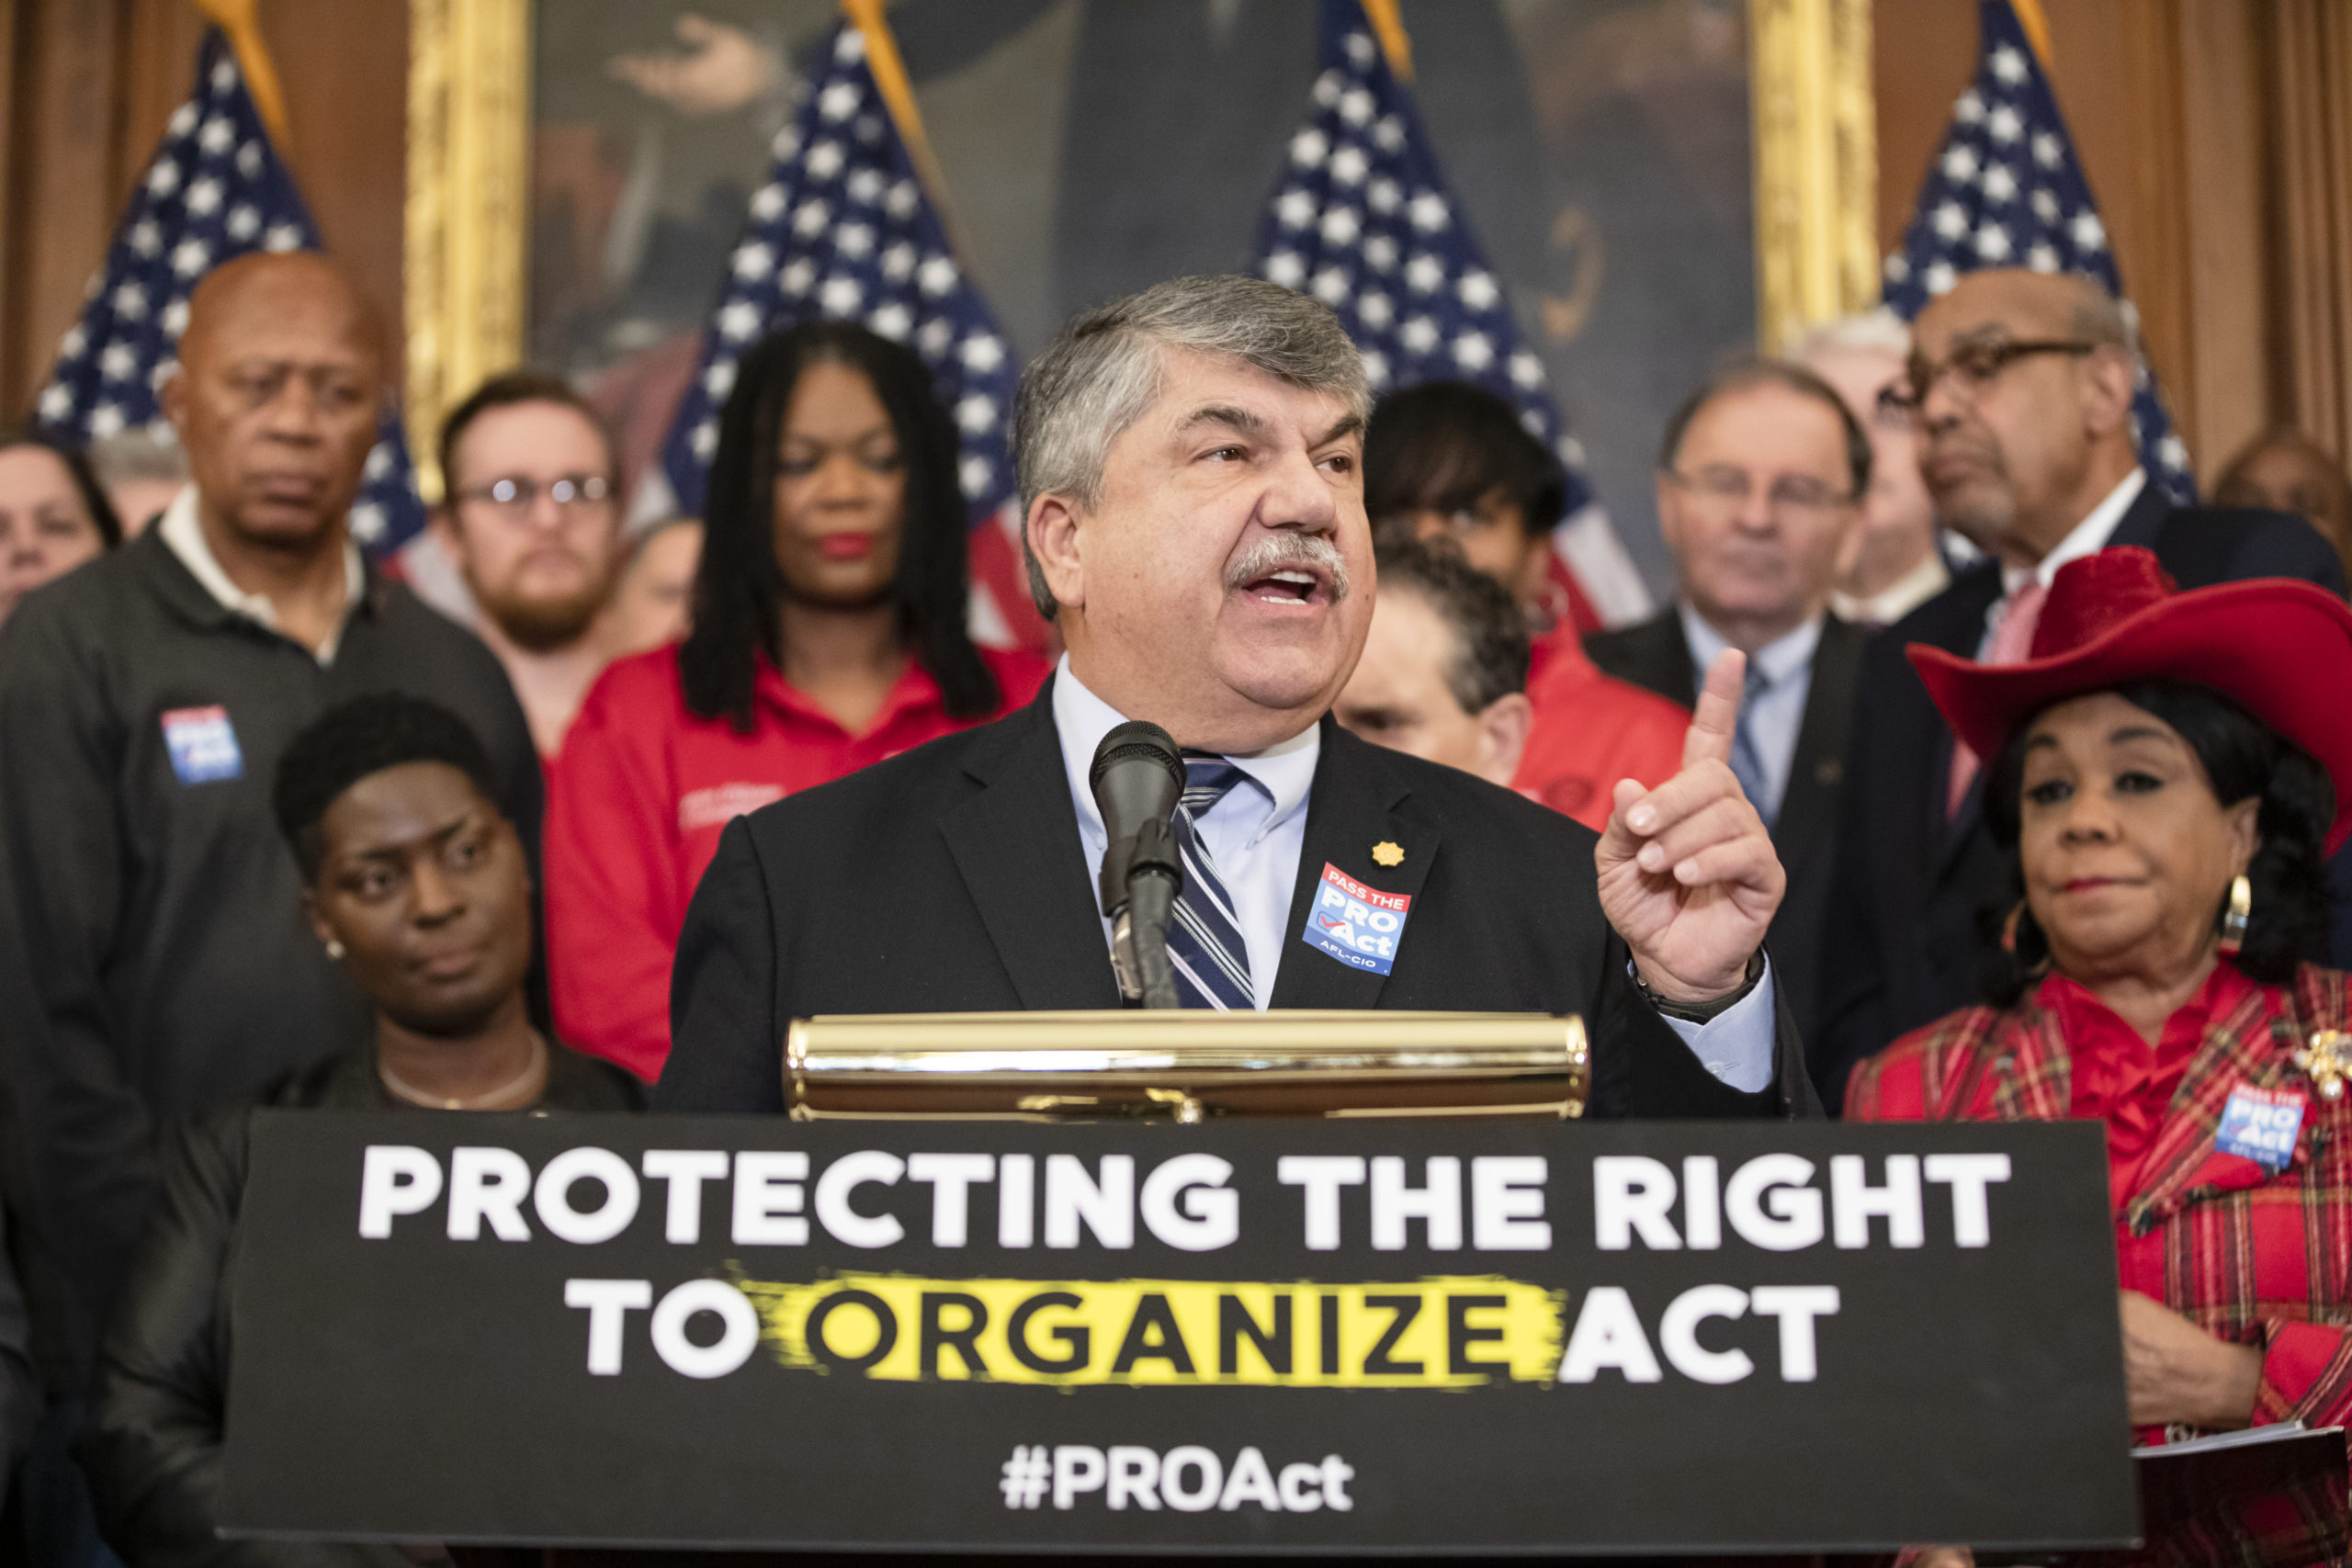 Richard Trumka, president of the AFL-CIO, speaks during a press conference advocating for the passage of the Protecting the Right to Organize Act on Feb. 5 in Washington, D.C. (Samuel Corum/Getty Images)